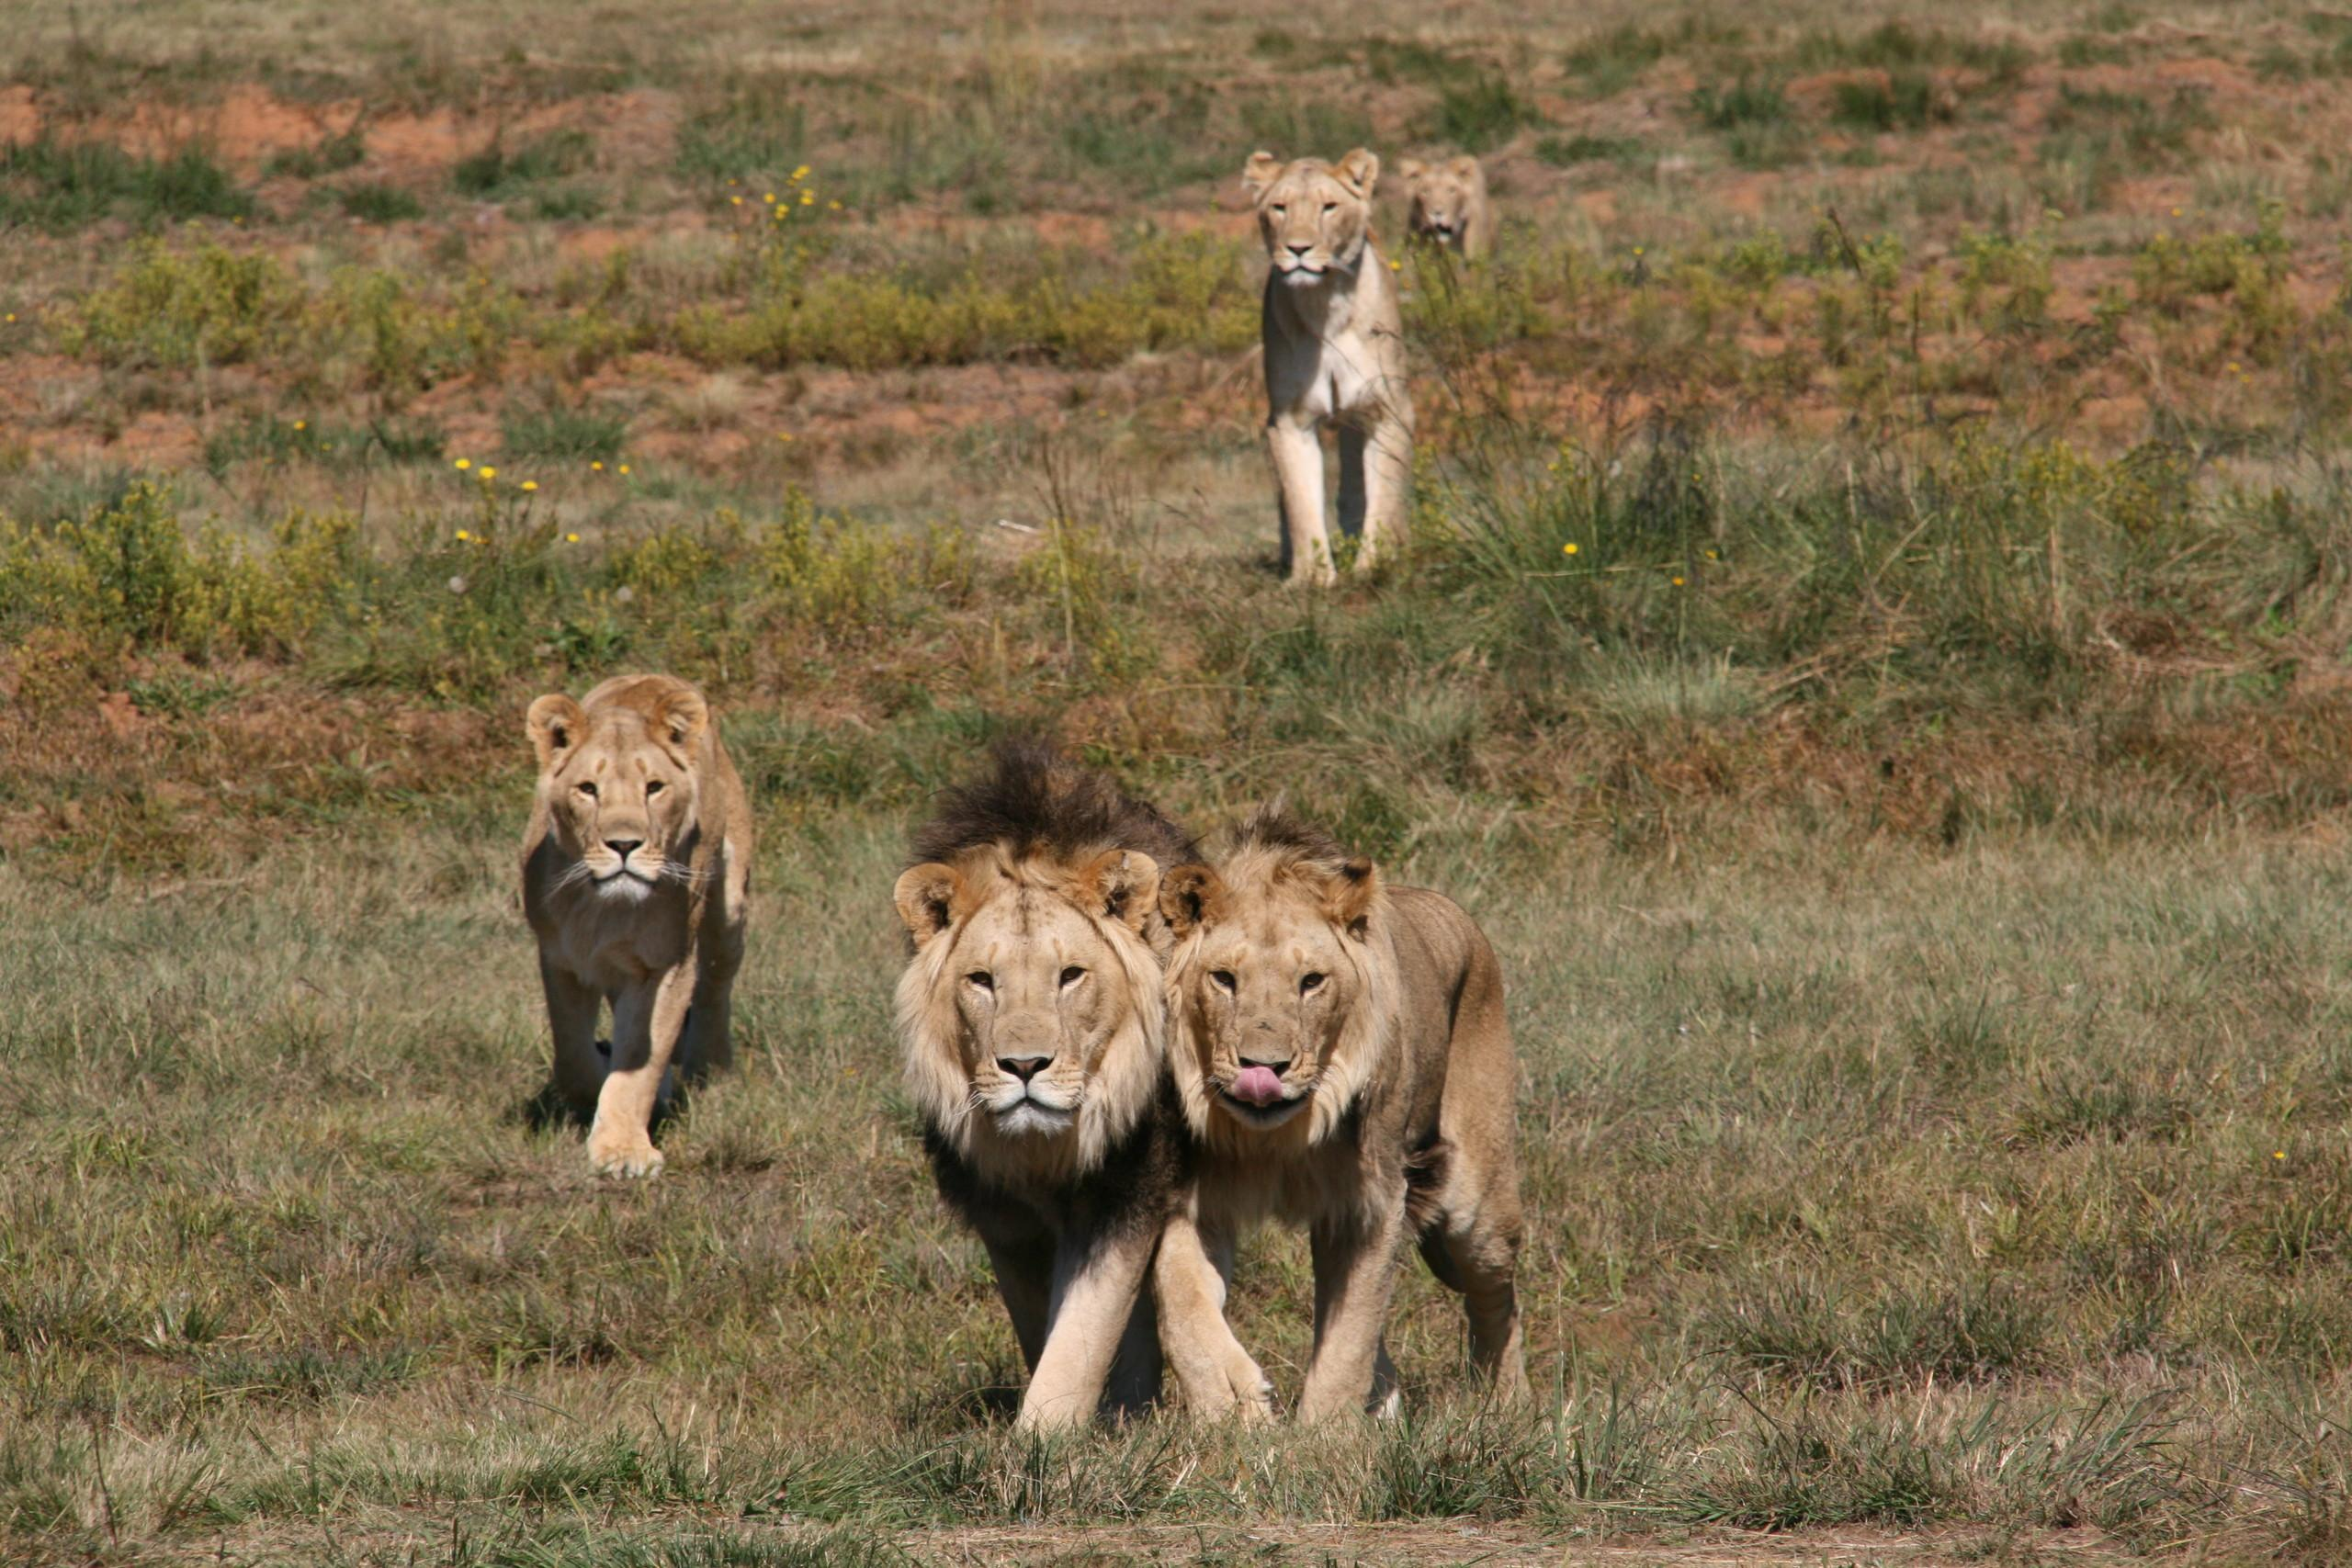 A lifelong Home for Big Cats - Our Animals - Lionsrock